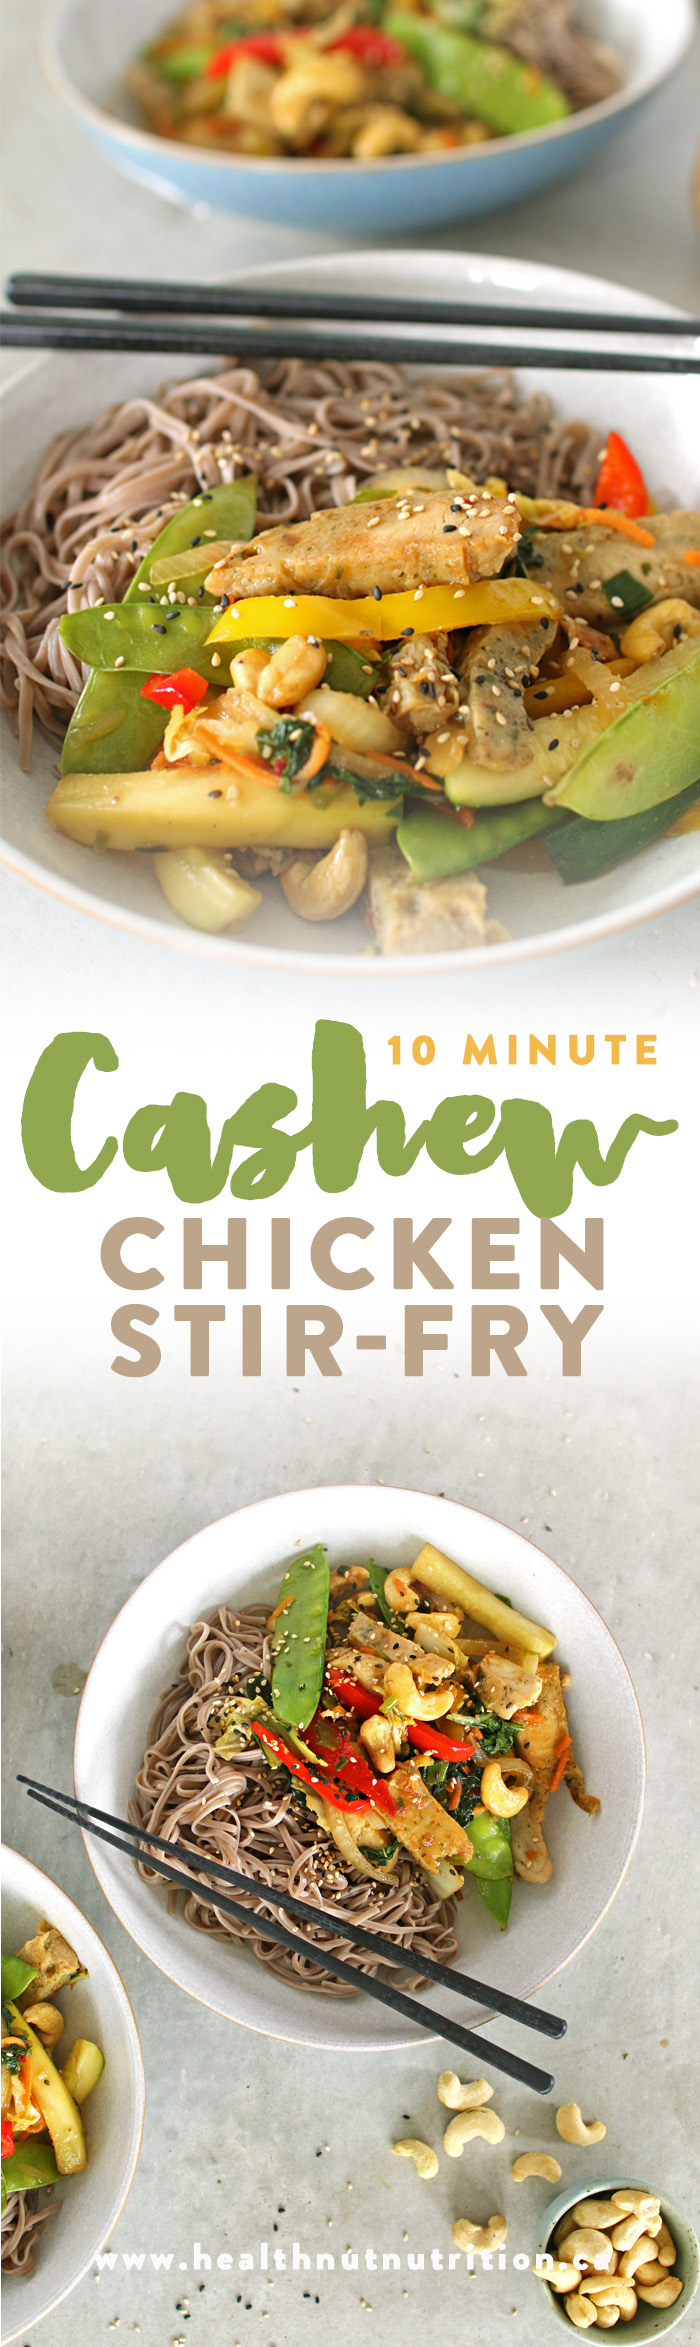 10 Minute Cashew Chicken Stir Fry! Pin now to save for later, or click to see more!